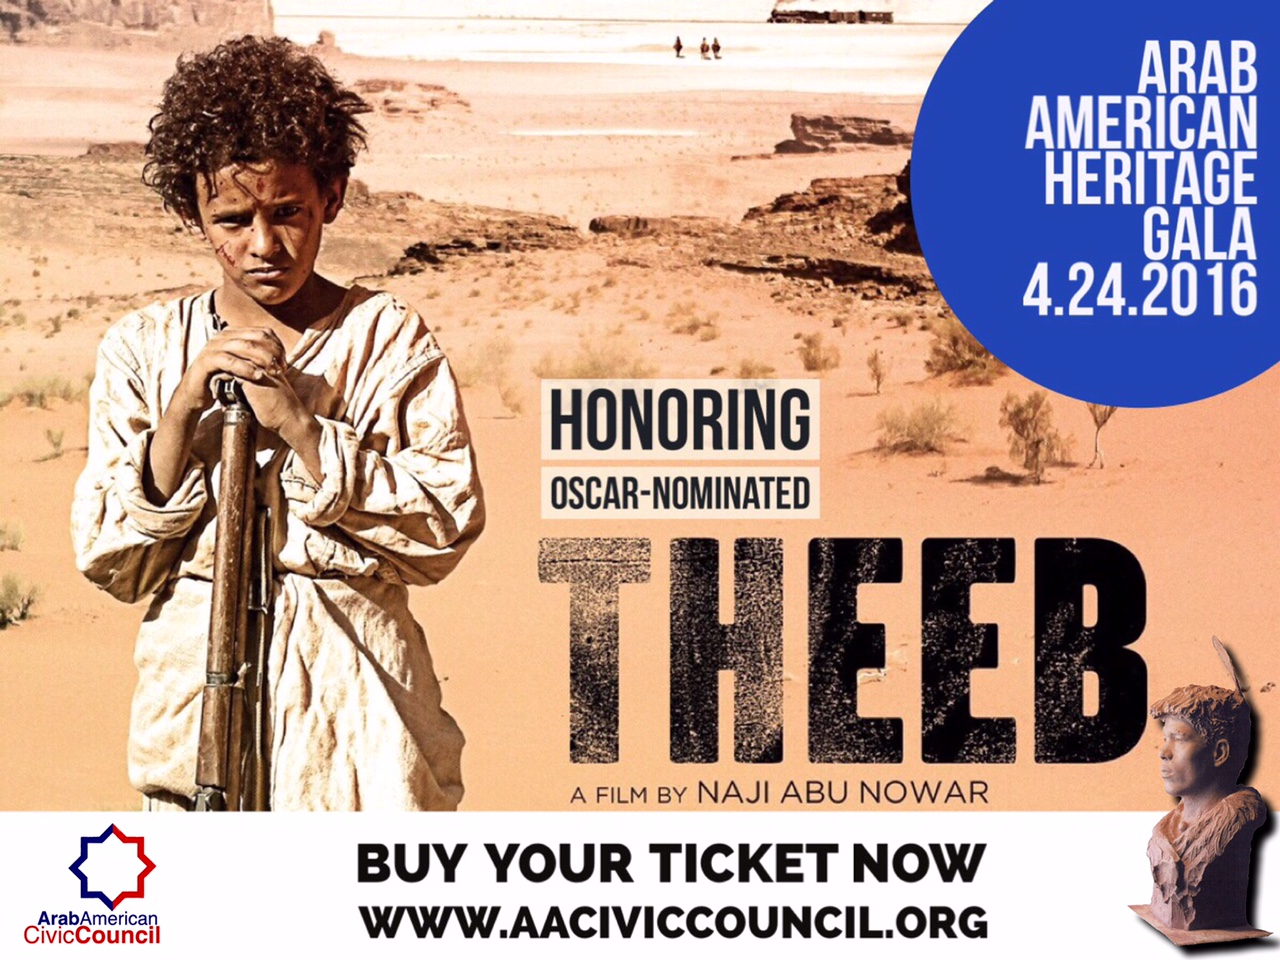 Honoring Oscar Nominated Film Theeb At Arab American